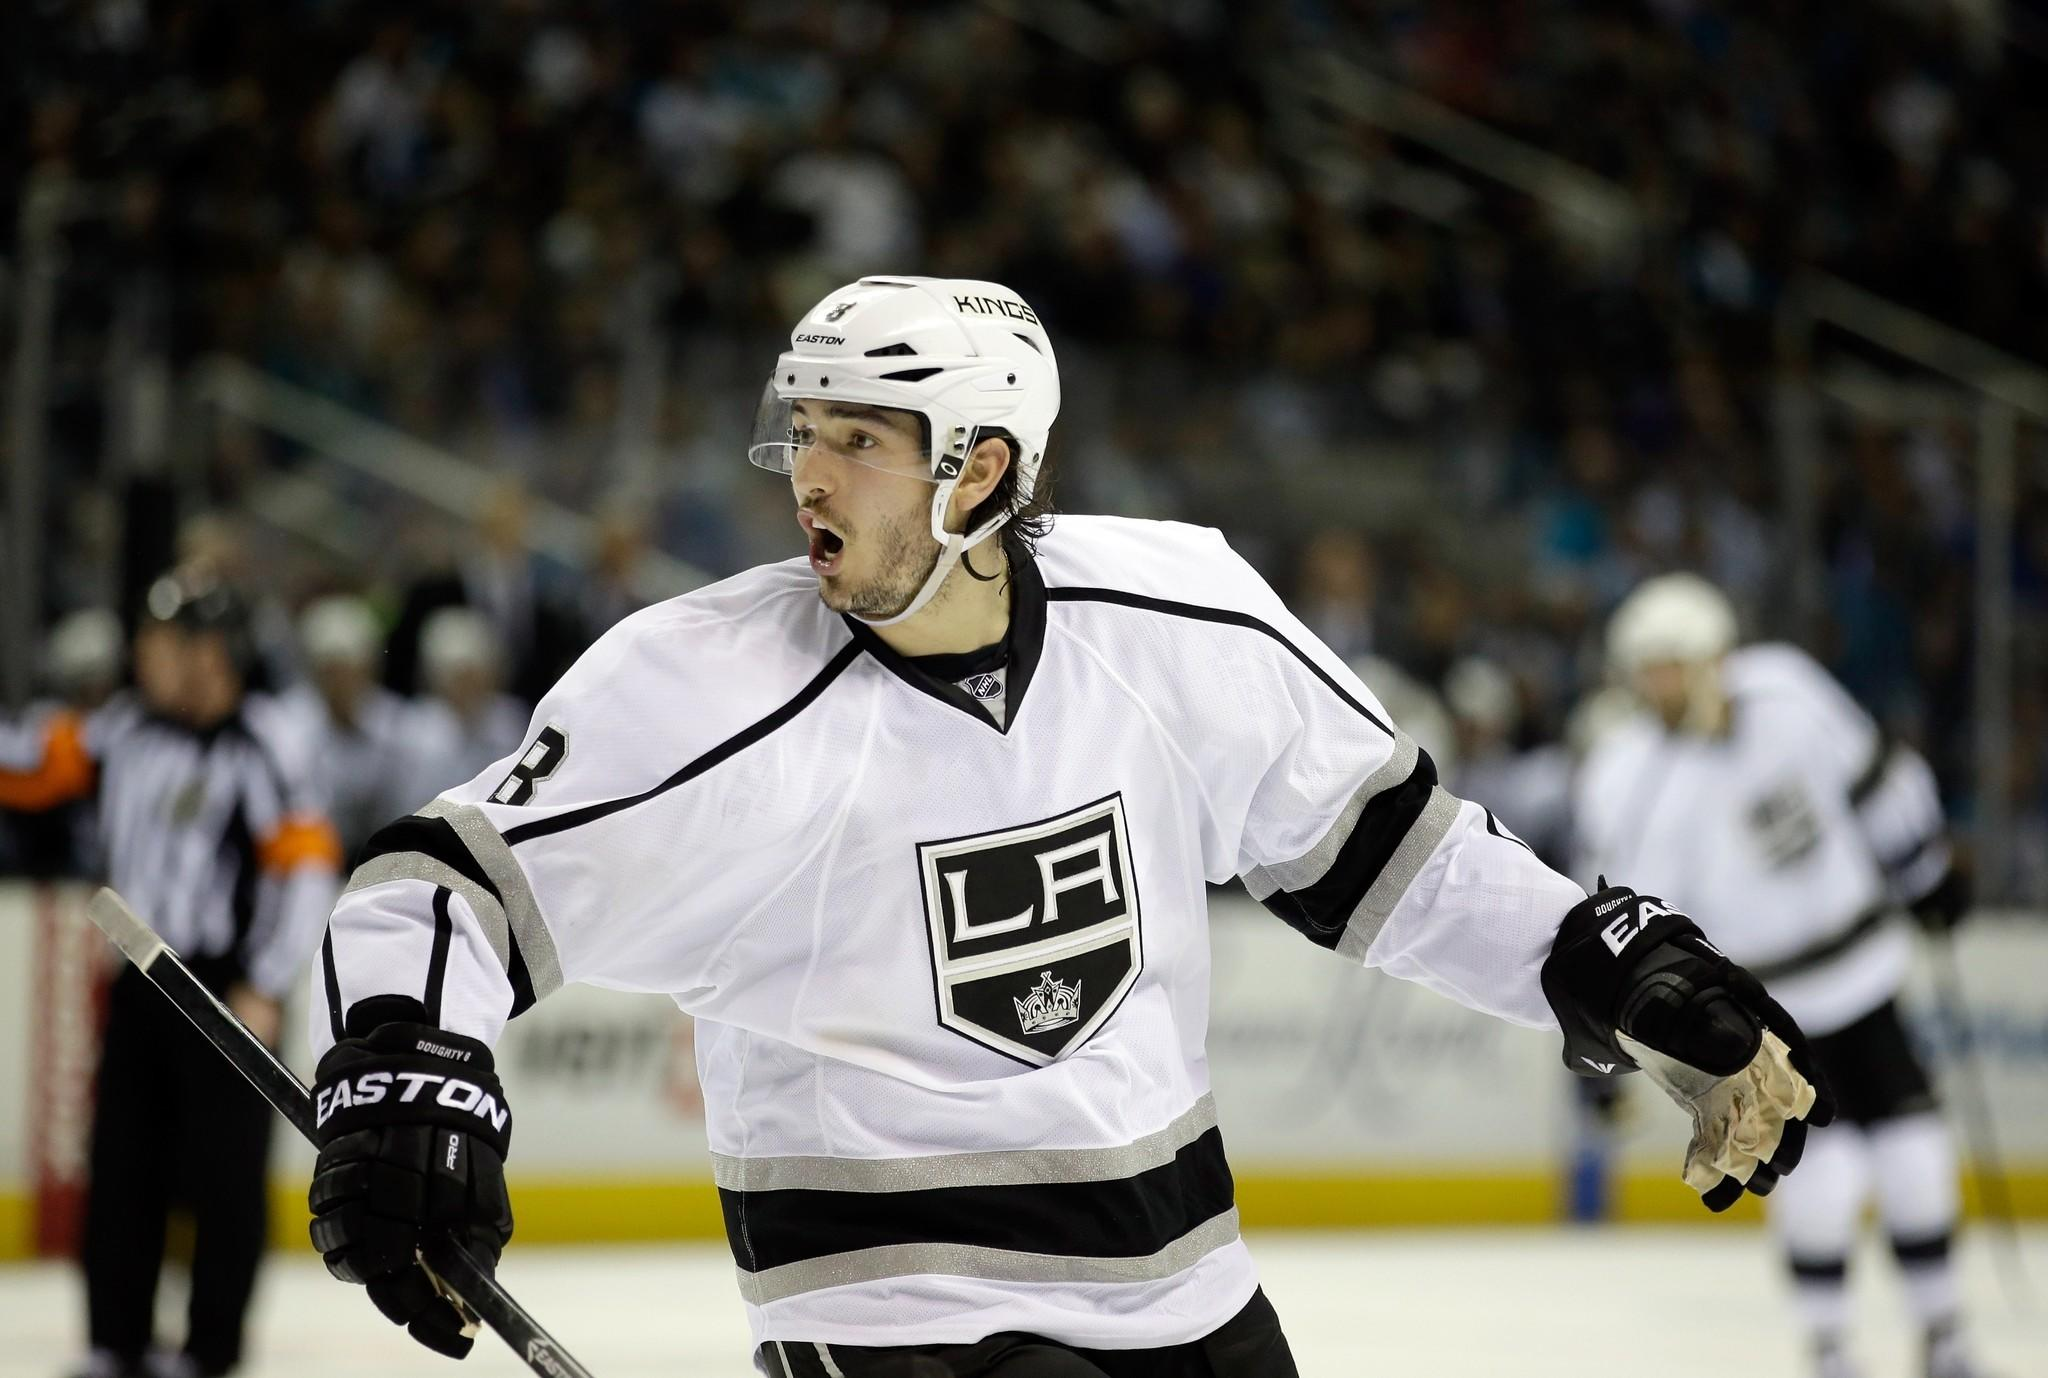 Drew Doughty wouldn't mind a little more ice time in the Kings' playoff series against San Jose.